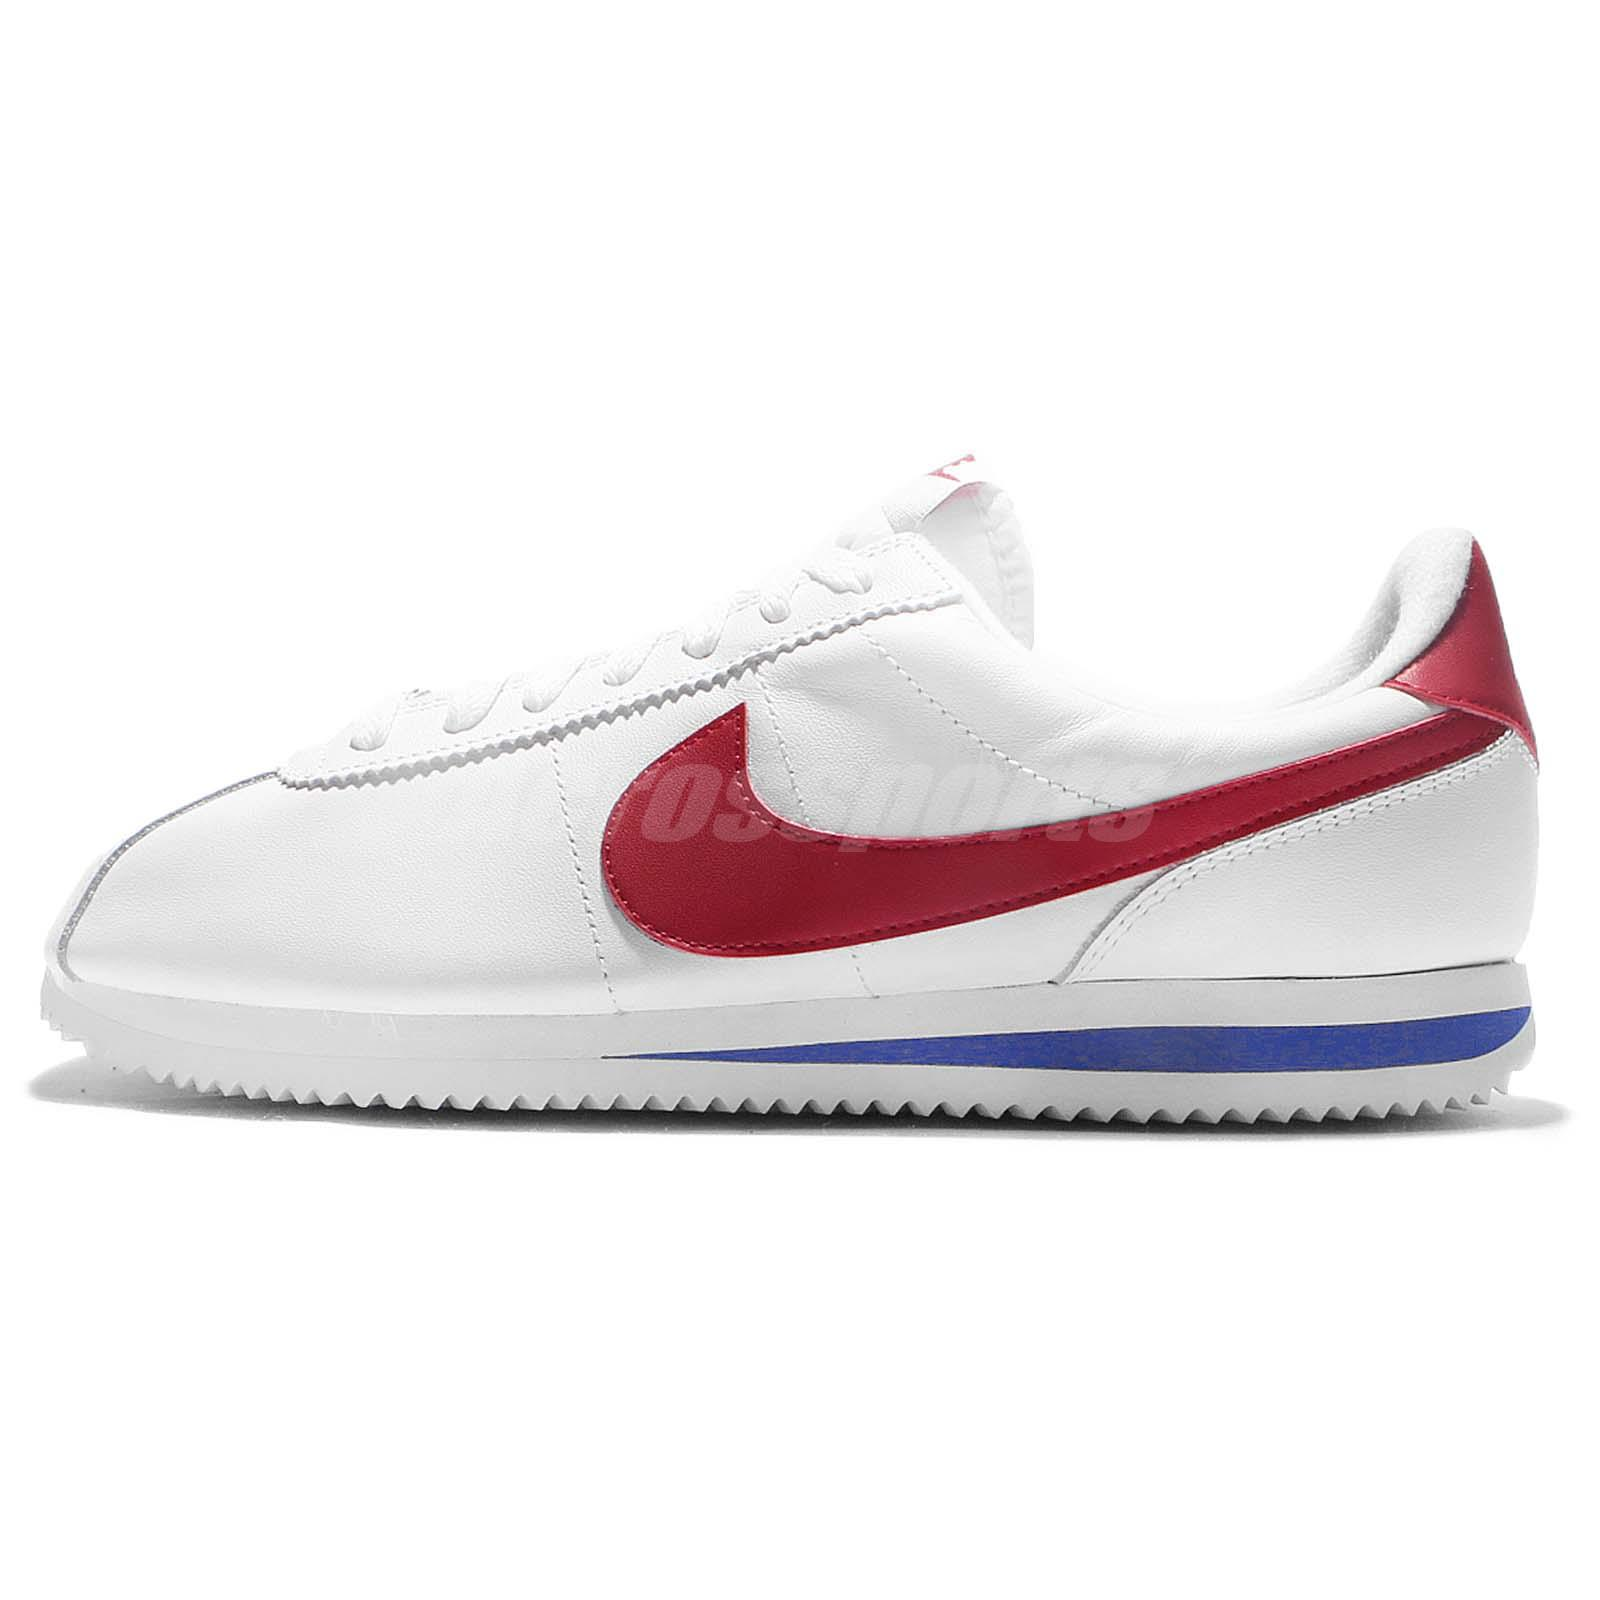 4afb6435fbcf62 ... get nike cortez basic leather og forrest gump white red blue men  classic 882254 164 90319